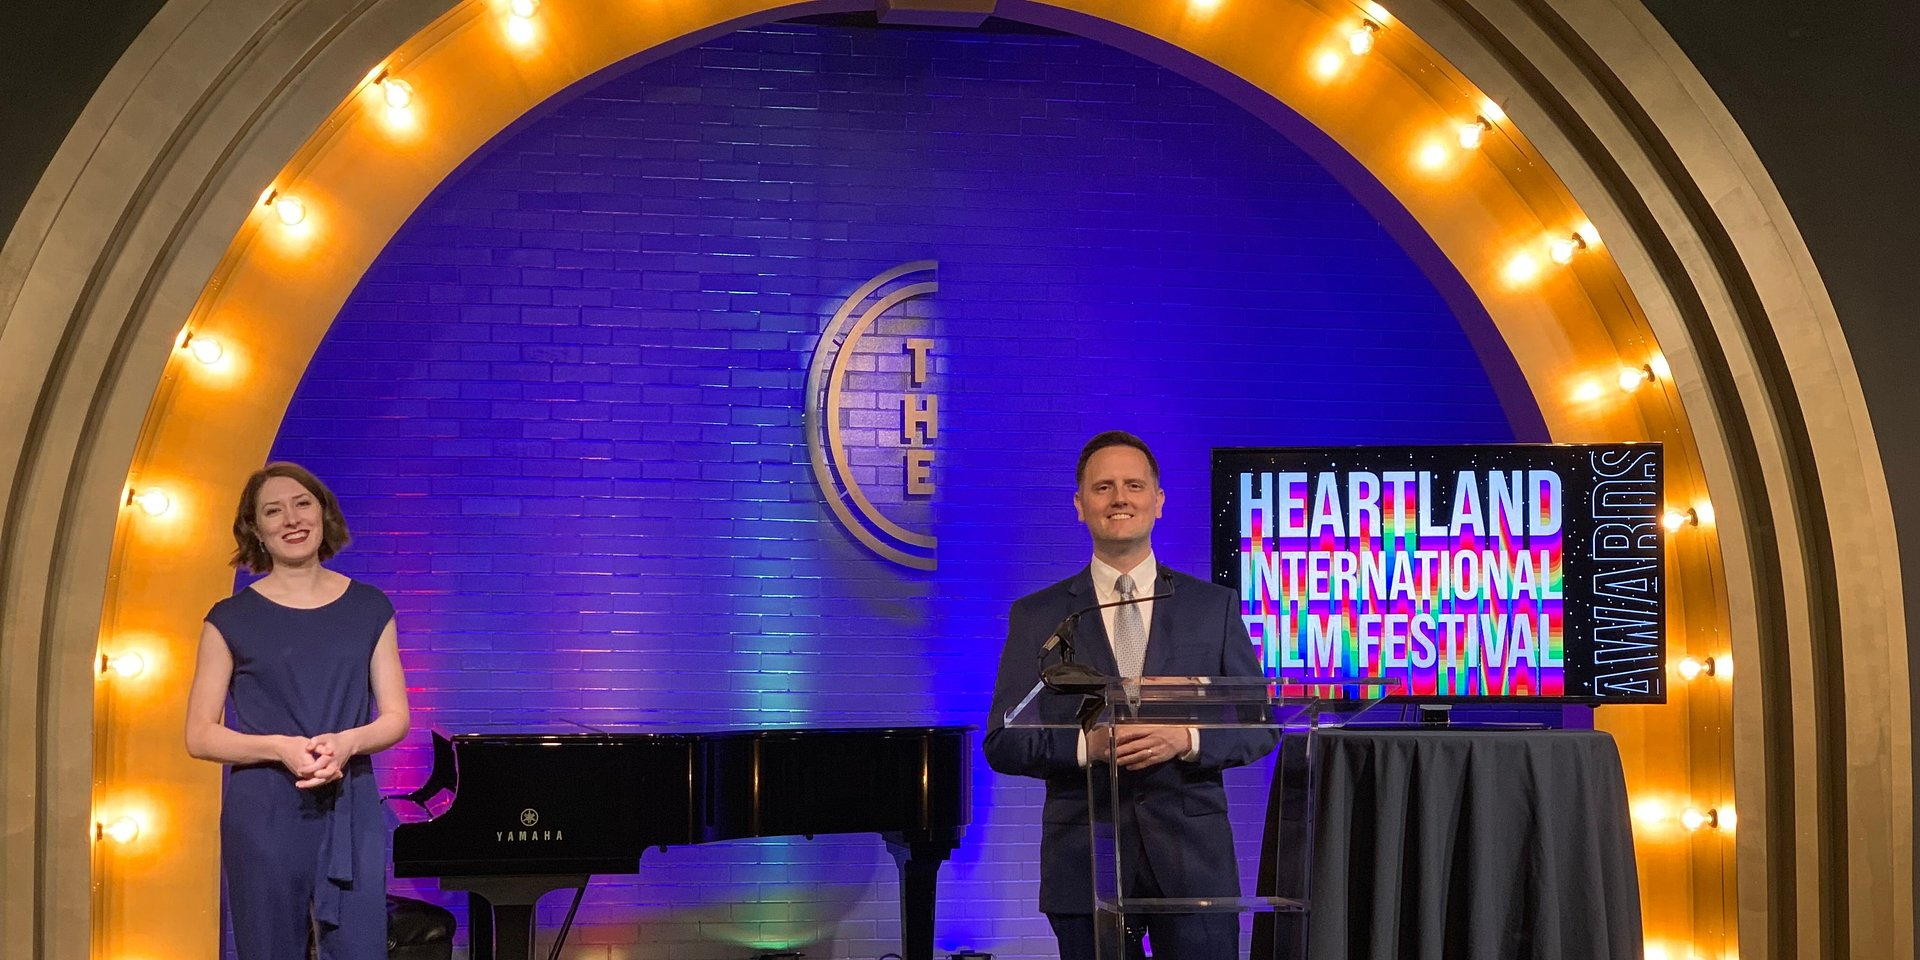 """29TH HEARTLAND INTERNATIONAL FILM FESTIVAL ANNOUNCES AWARD WINNERS INCLUDING TWO HONORS FOR MTV DOCUMENTARY FILMS ACQUISITION """"76 DAYS"""""""